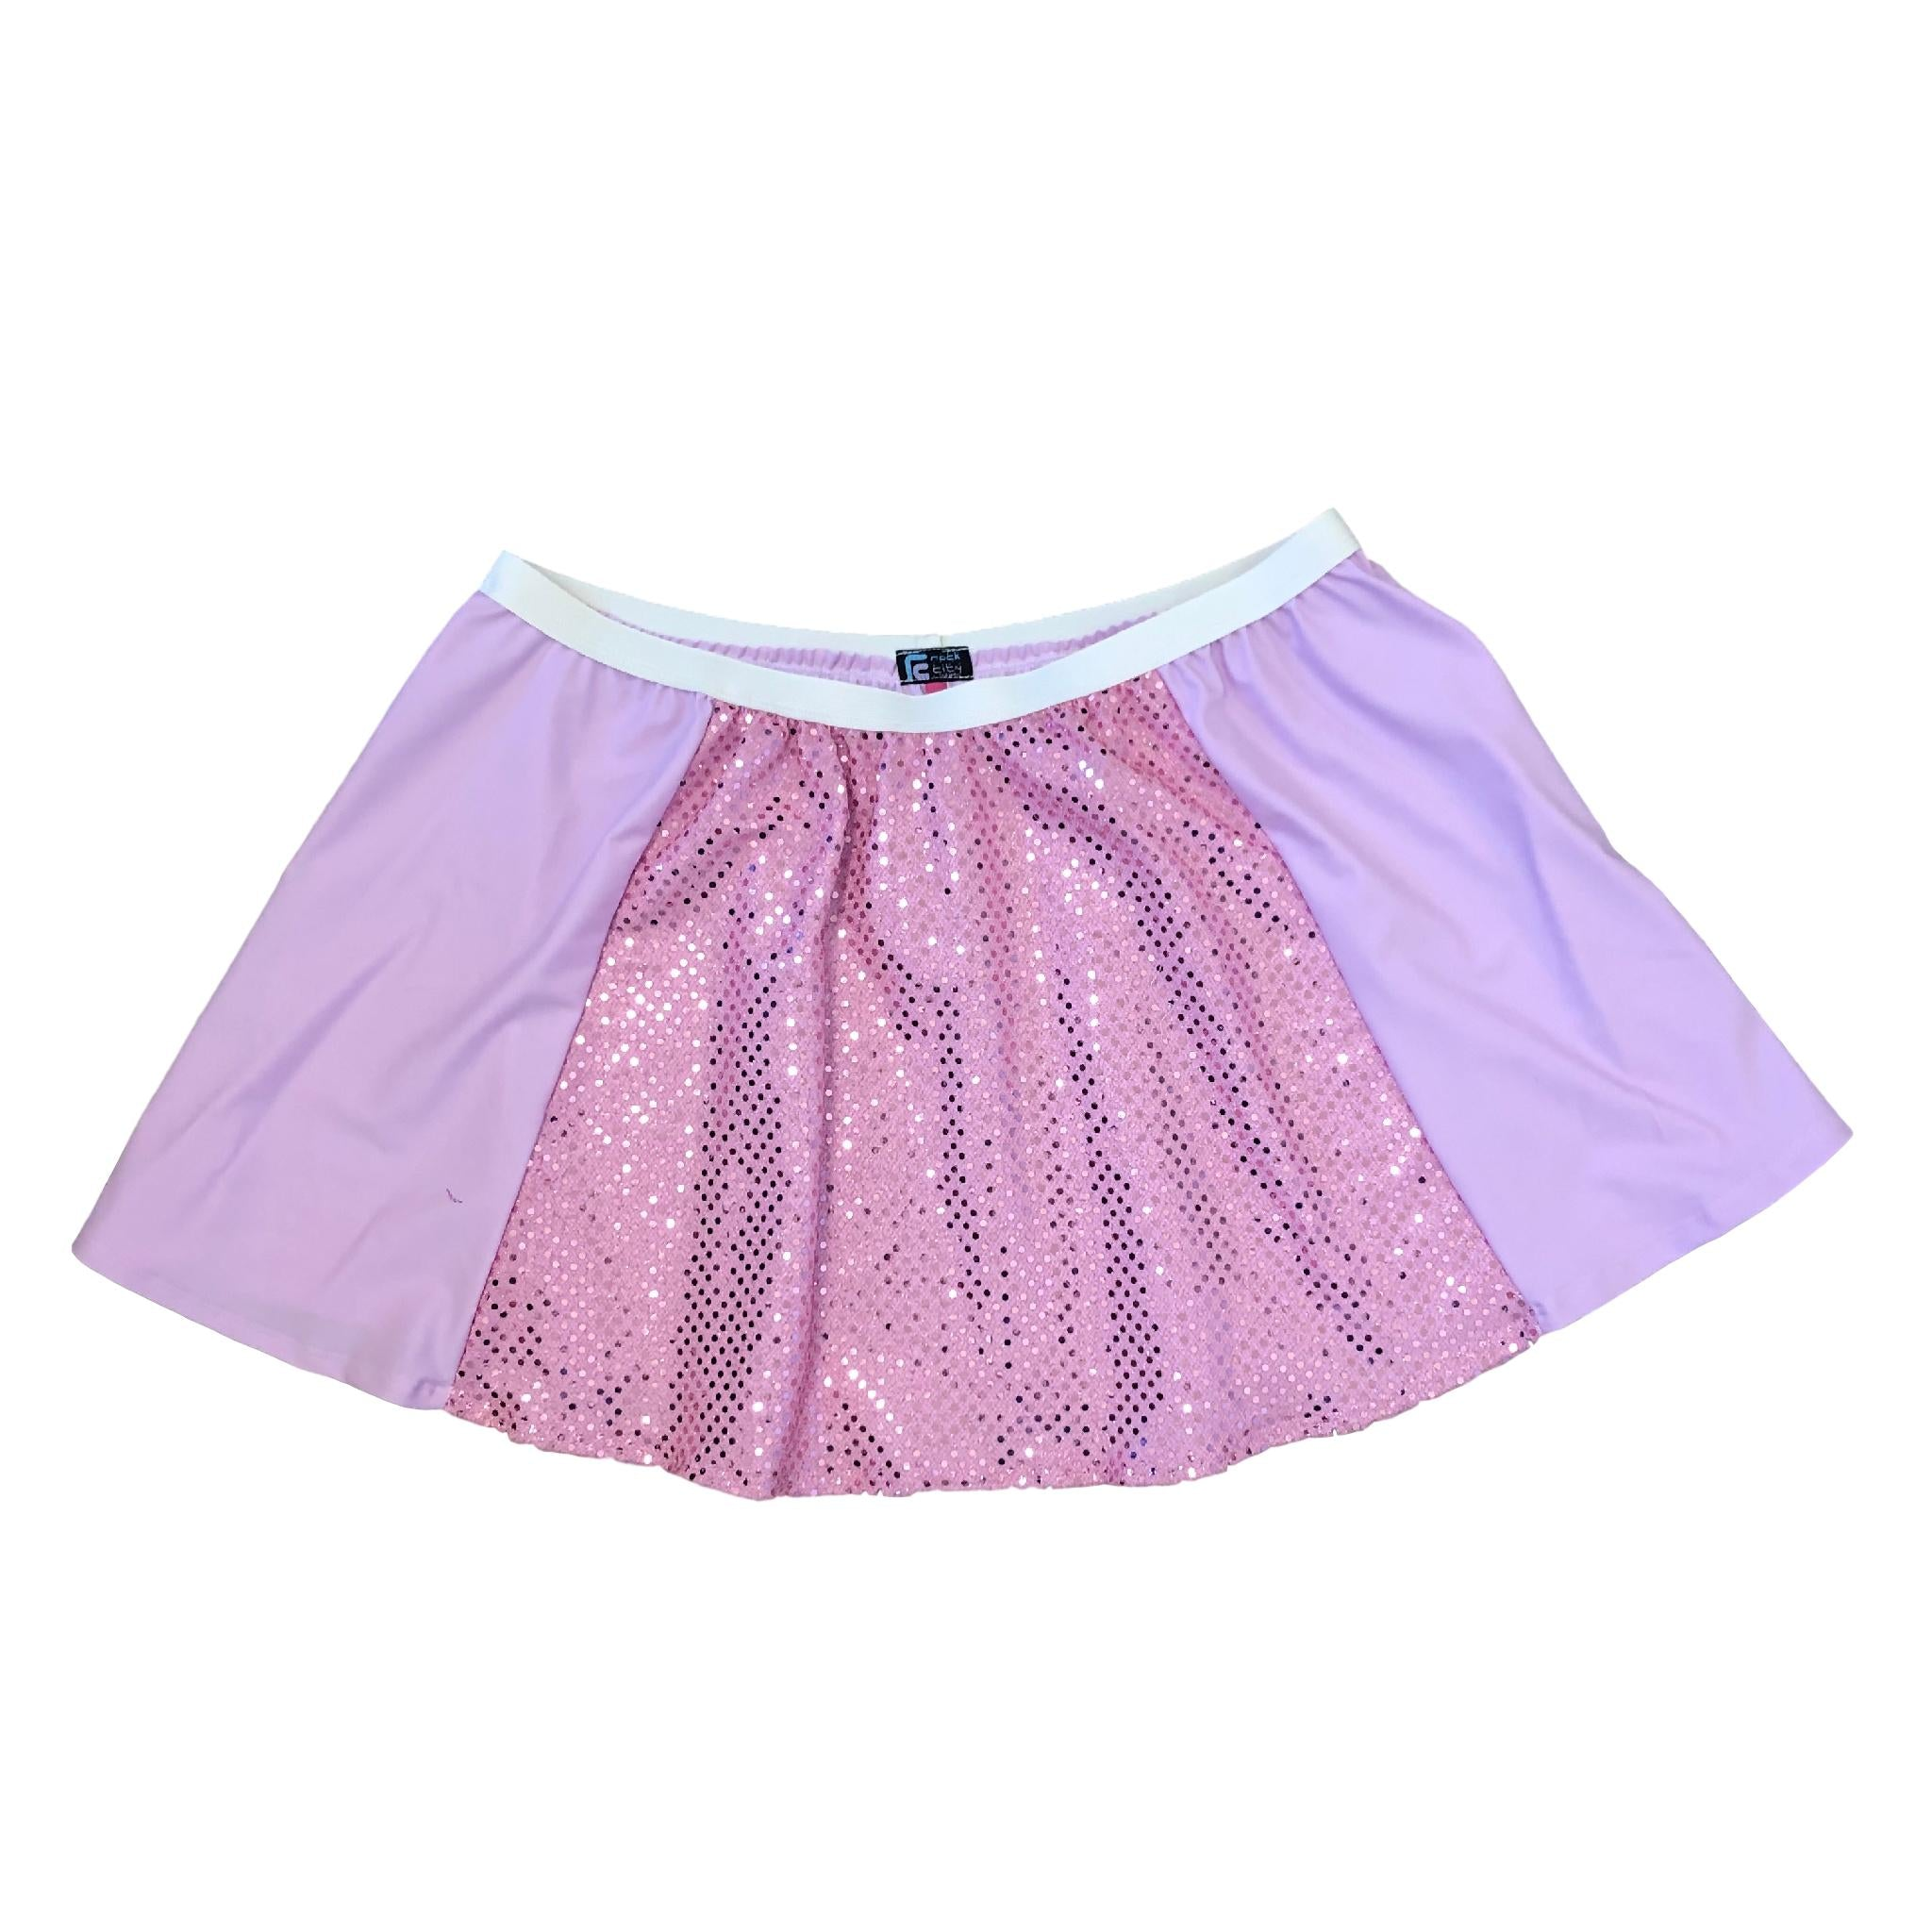 Angel from Stitch Skirt Only - Rock City Skirts